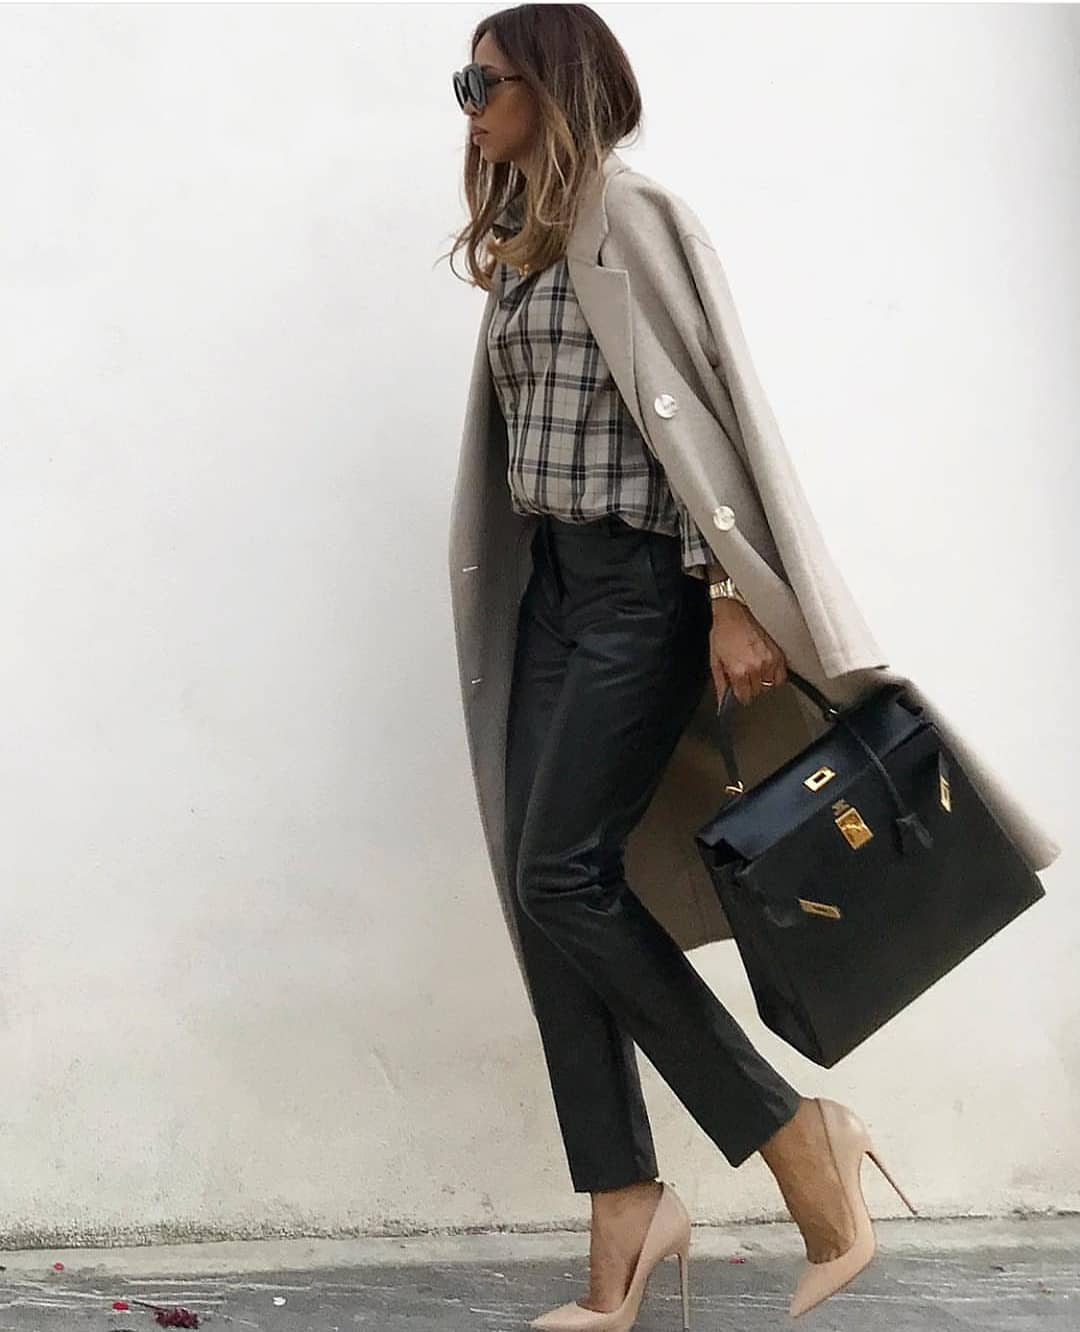 Grey Coat With Plaid Shirt And Black Leather Pants For Fall 2020